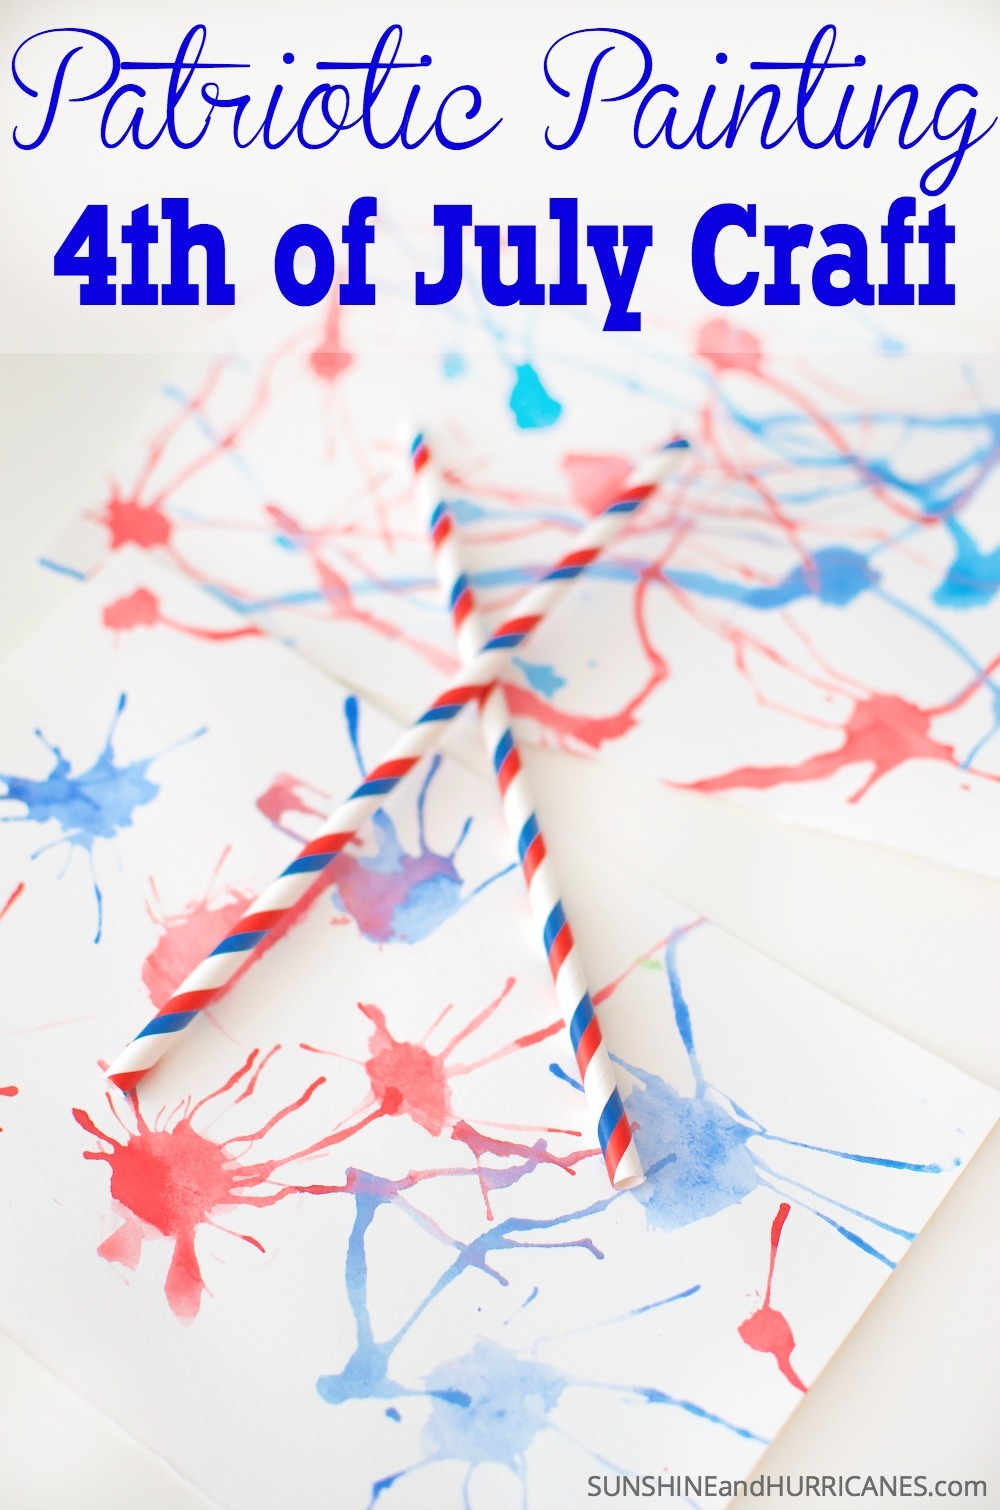 Here's a super simple 4th of July Craft to do with your kids that is fun and will get everyone in the holiday spirit. The final product is so pretty and would make great patriotic decor. 4th of July Craft - Patriotic Painting. SunshineandHurricanes.com